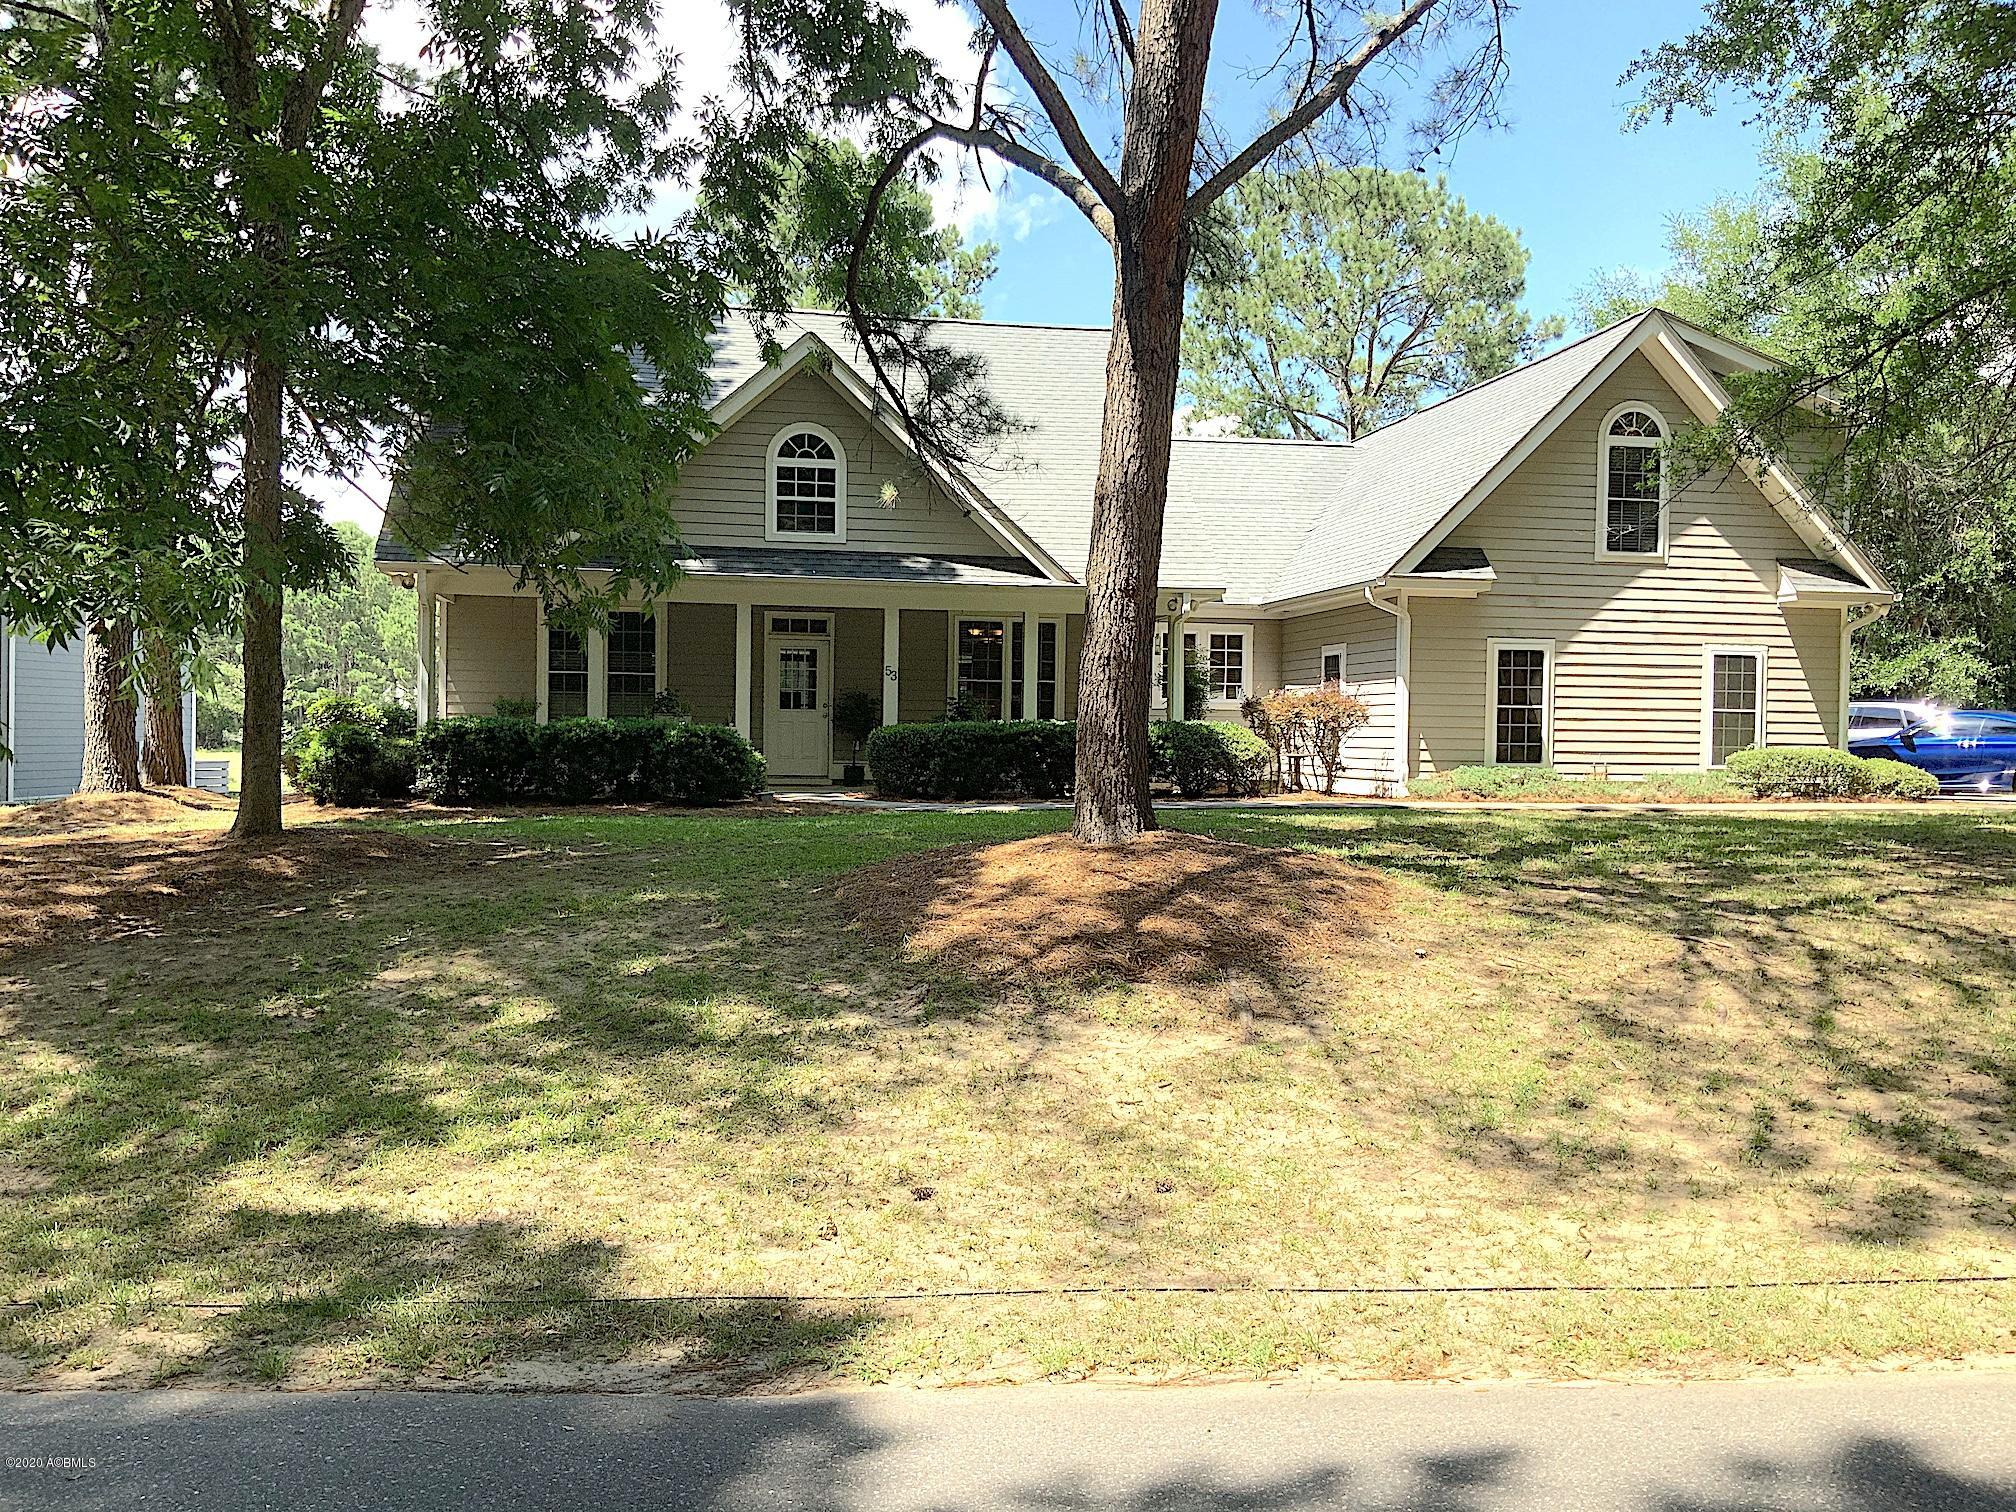 Photo of 53 Downing Drive, Beaufort, SC 29907